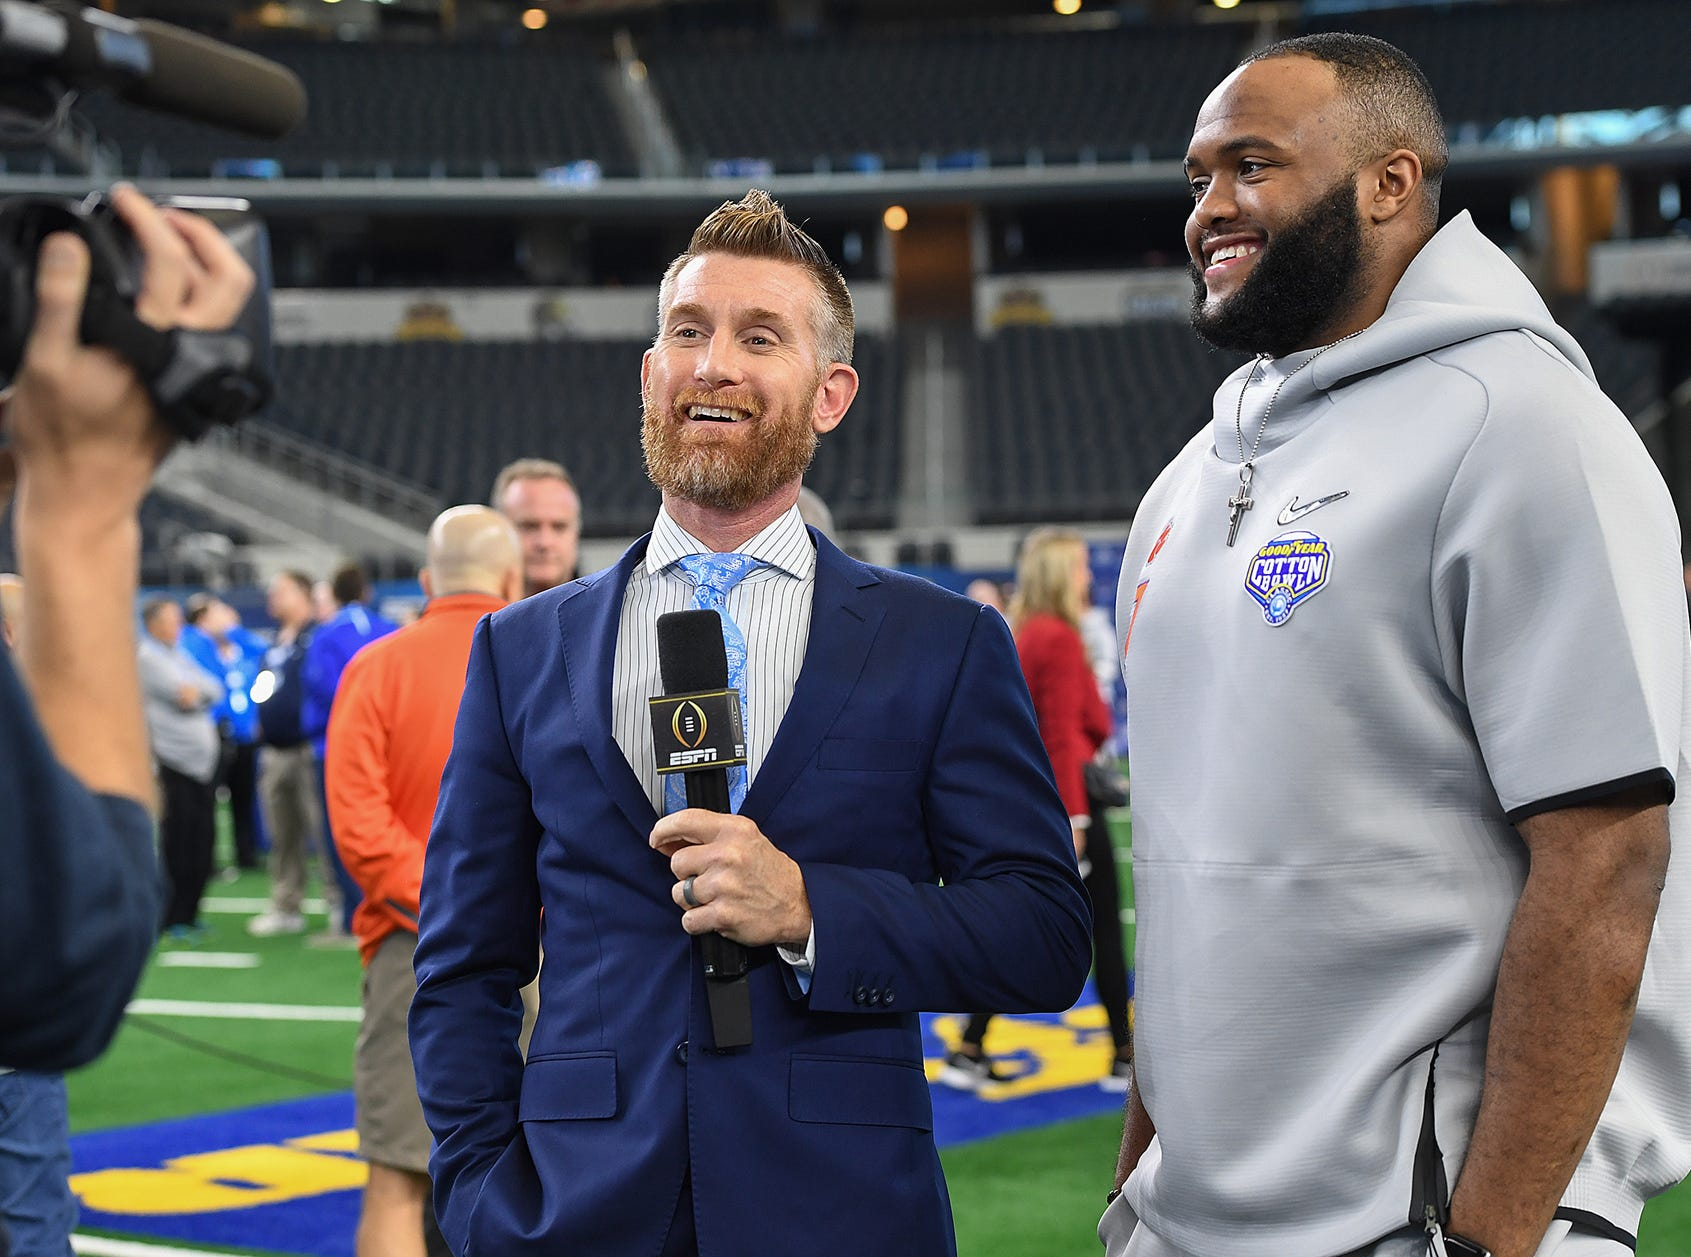 ESPN Marty Smith interviews defensive lineman Austin Bryant during the Tigers Cotton Bowl media day at AT&T Stadium in Arlington, TX Thursday, December 27, 2018.